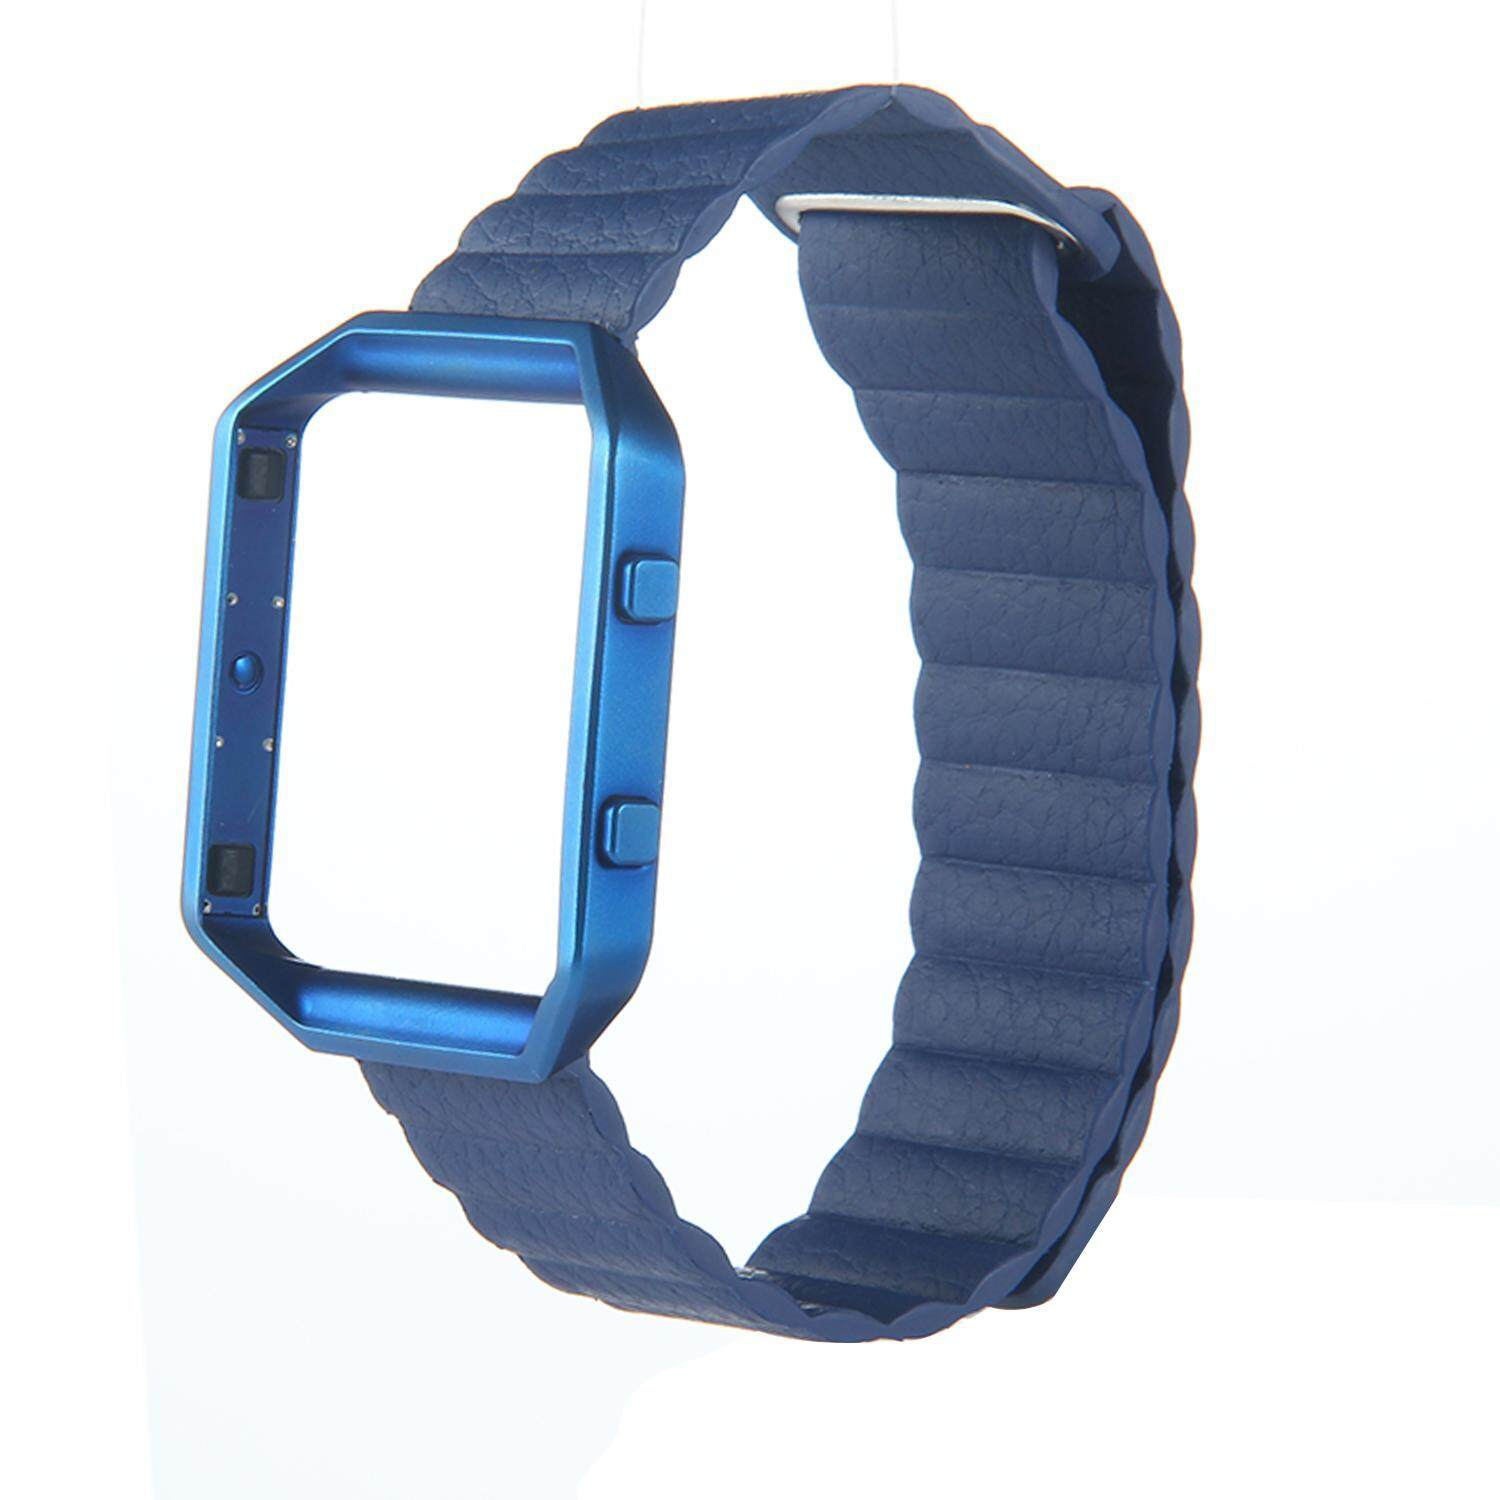 NuodunN Smart Watch Band ,Loop Style Magnetic Strap Genuine Leather Replacement Band for Fitbit Blaze